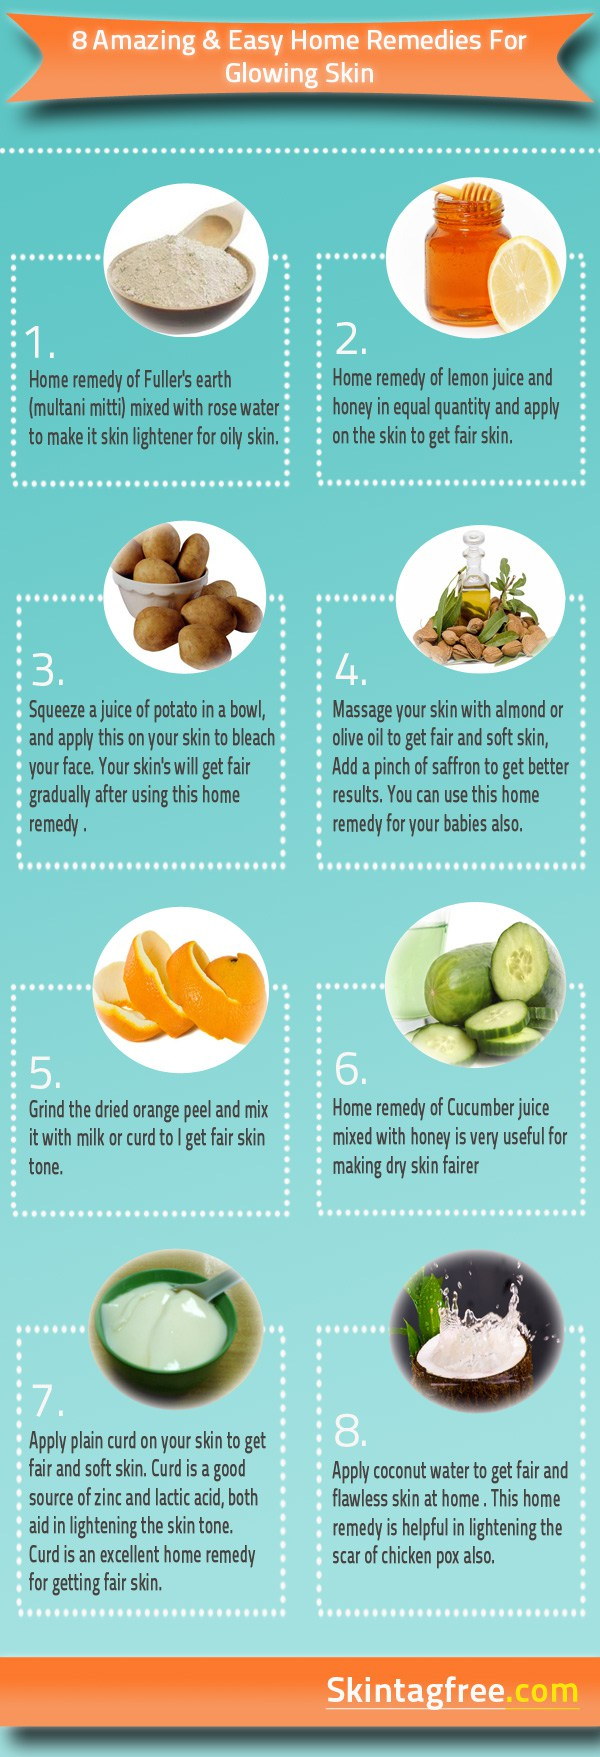 How To Get Glowing Skin - Easy Home Remedies - Infographics